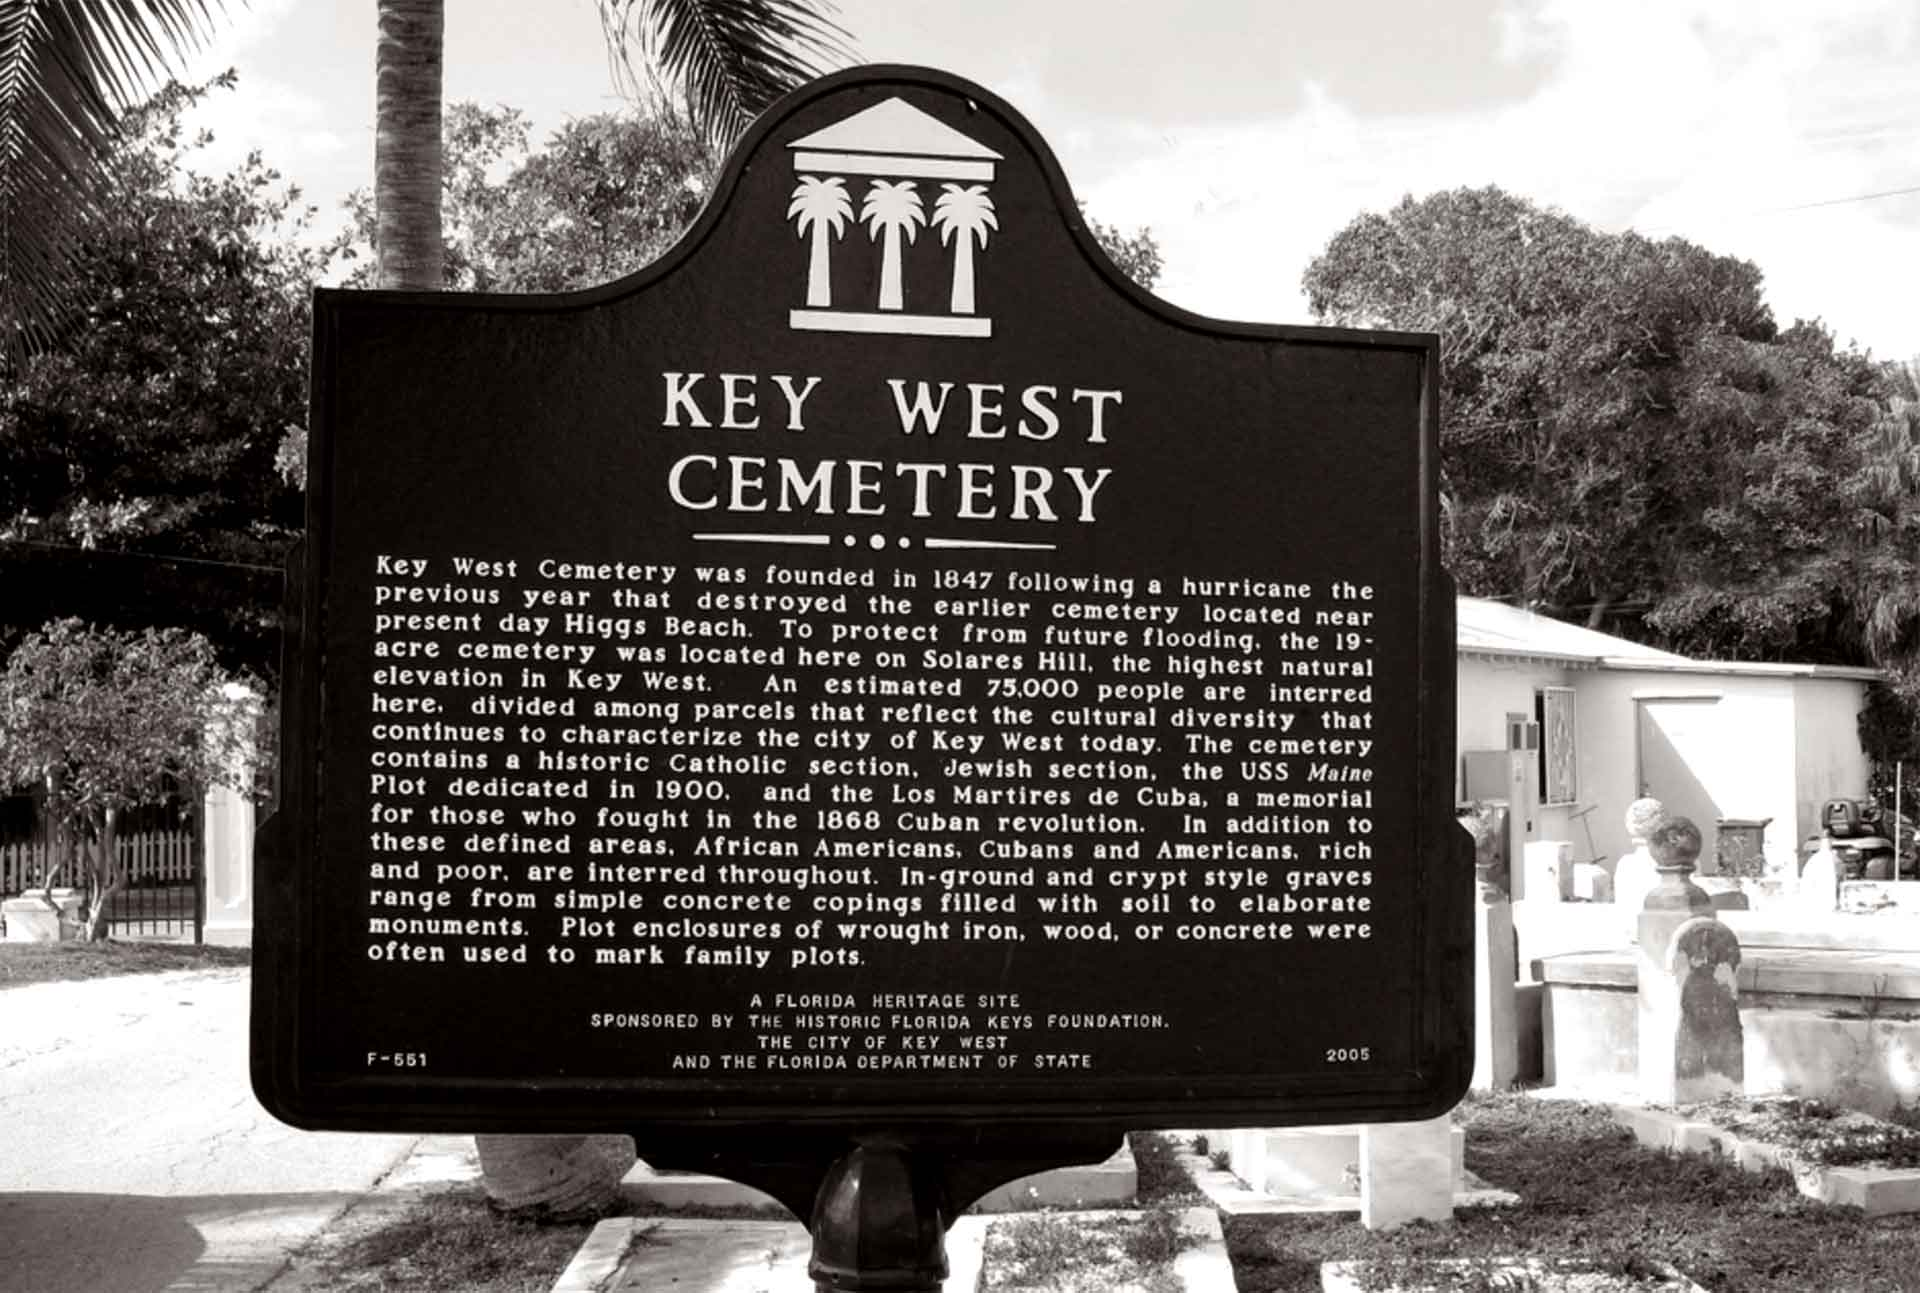 key west cemetery graves black and white